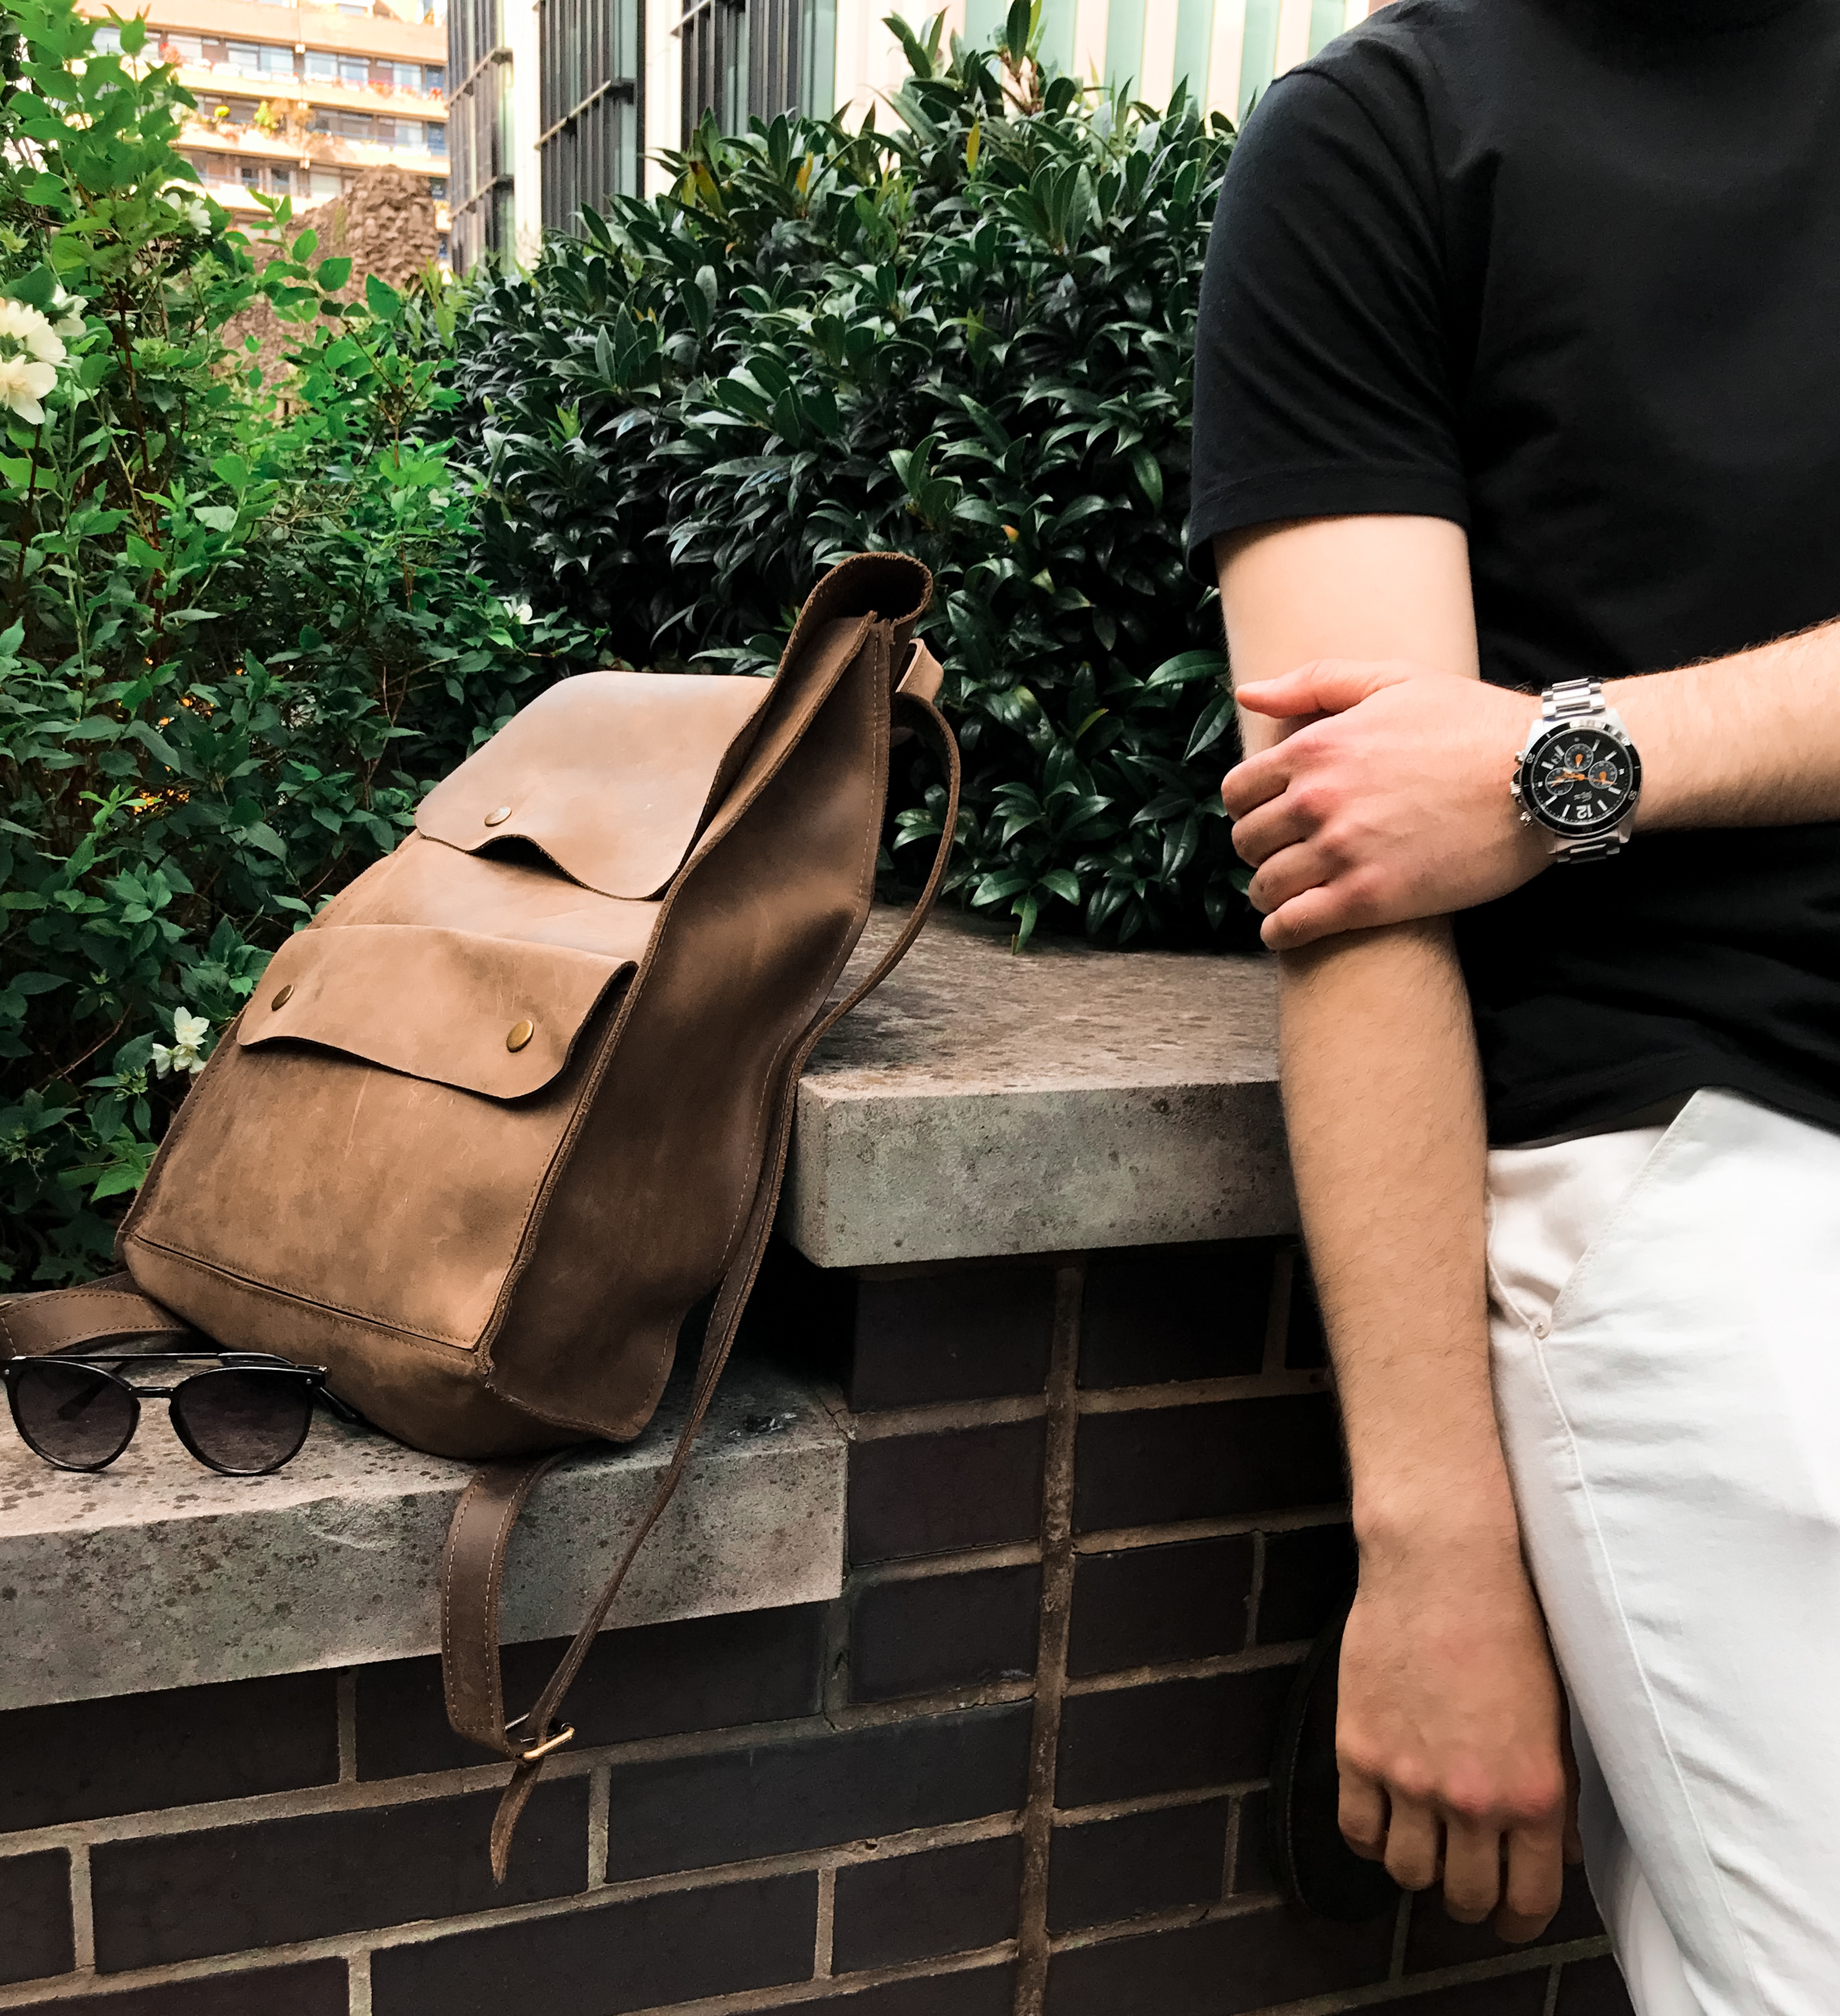 Low shot of a trendy backpack, sunglasses, and a person wearing a watch